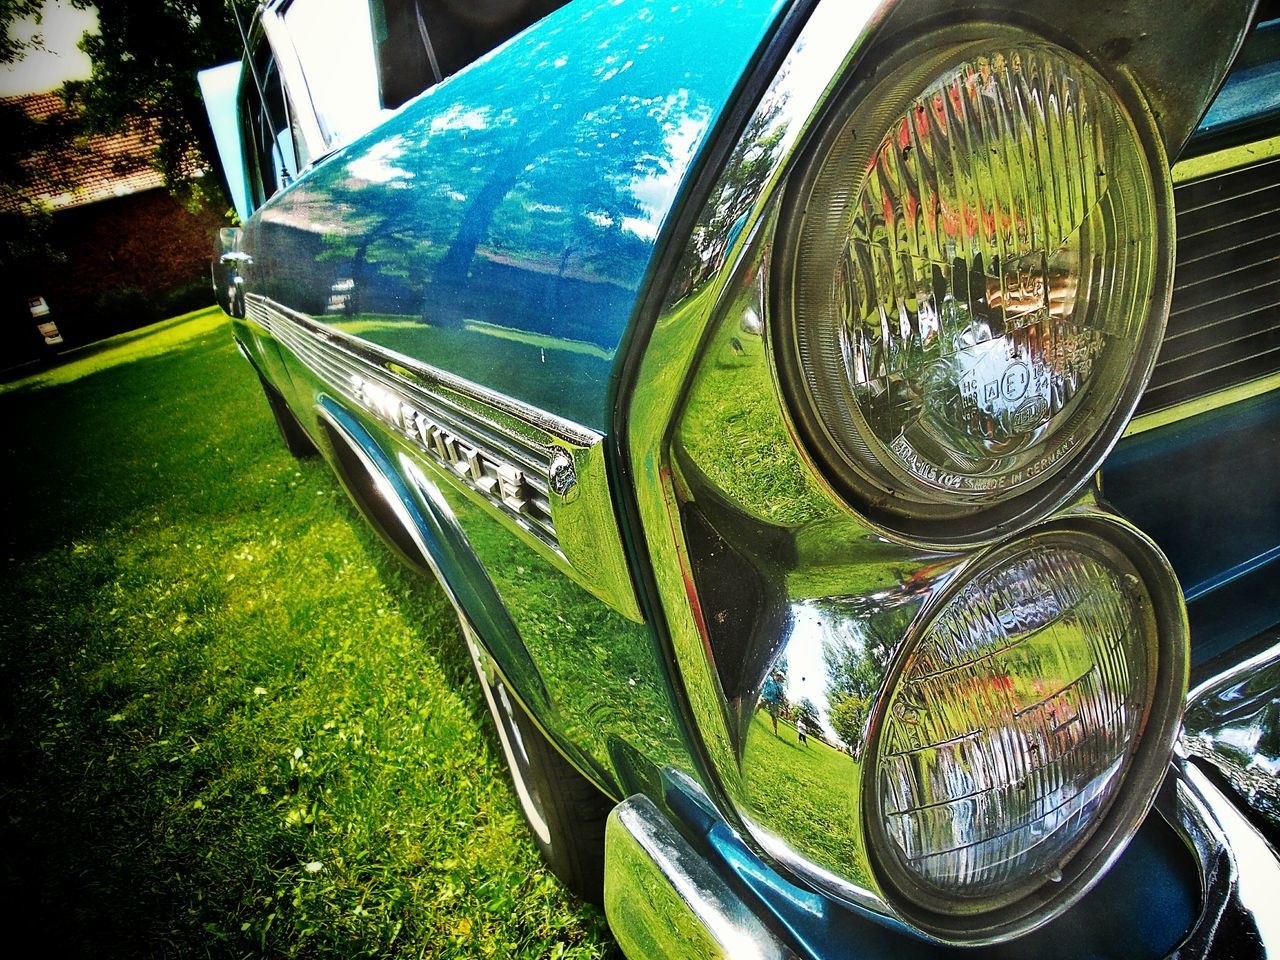 Beautiful Cars Old American Cars Car Details Chrome Reflections Of The Garden On The Car Paint Pastel Colors standing in the Castle Gardens Headlights Strange PerspectiveRoaring Sixties PONTIAC Bonneville 1963 Oldtimer CarShow Langenselbold Germany🇩🇪 Mein Automoment Showcase June Dramatic Angles